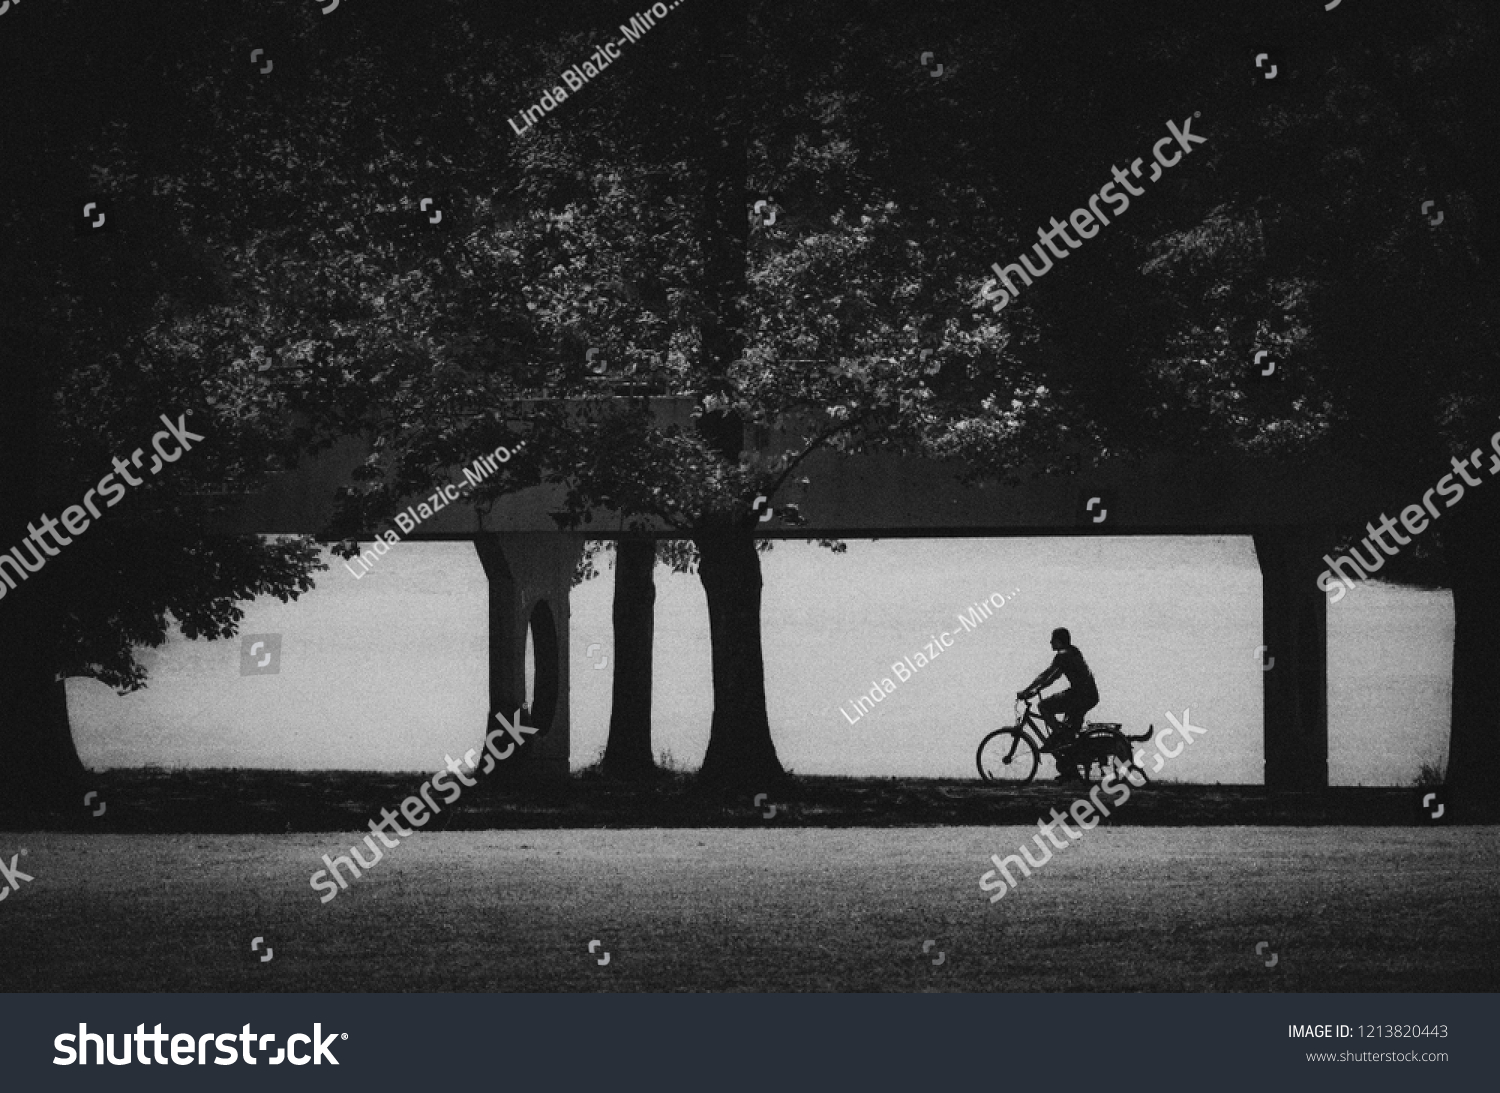 Outstanding Silhouette Man On Bicycle Dog Running People Parks Gmtry Best Dining Table And Chair Ideas Images Gmtryco